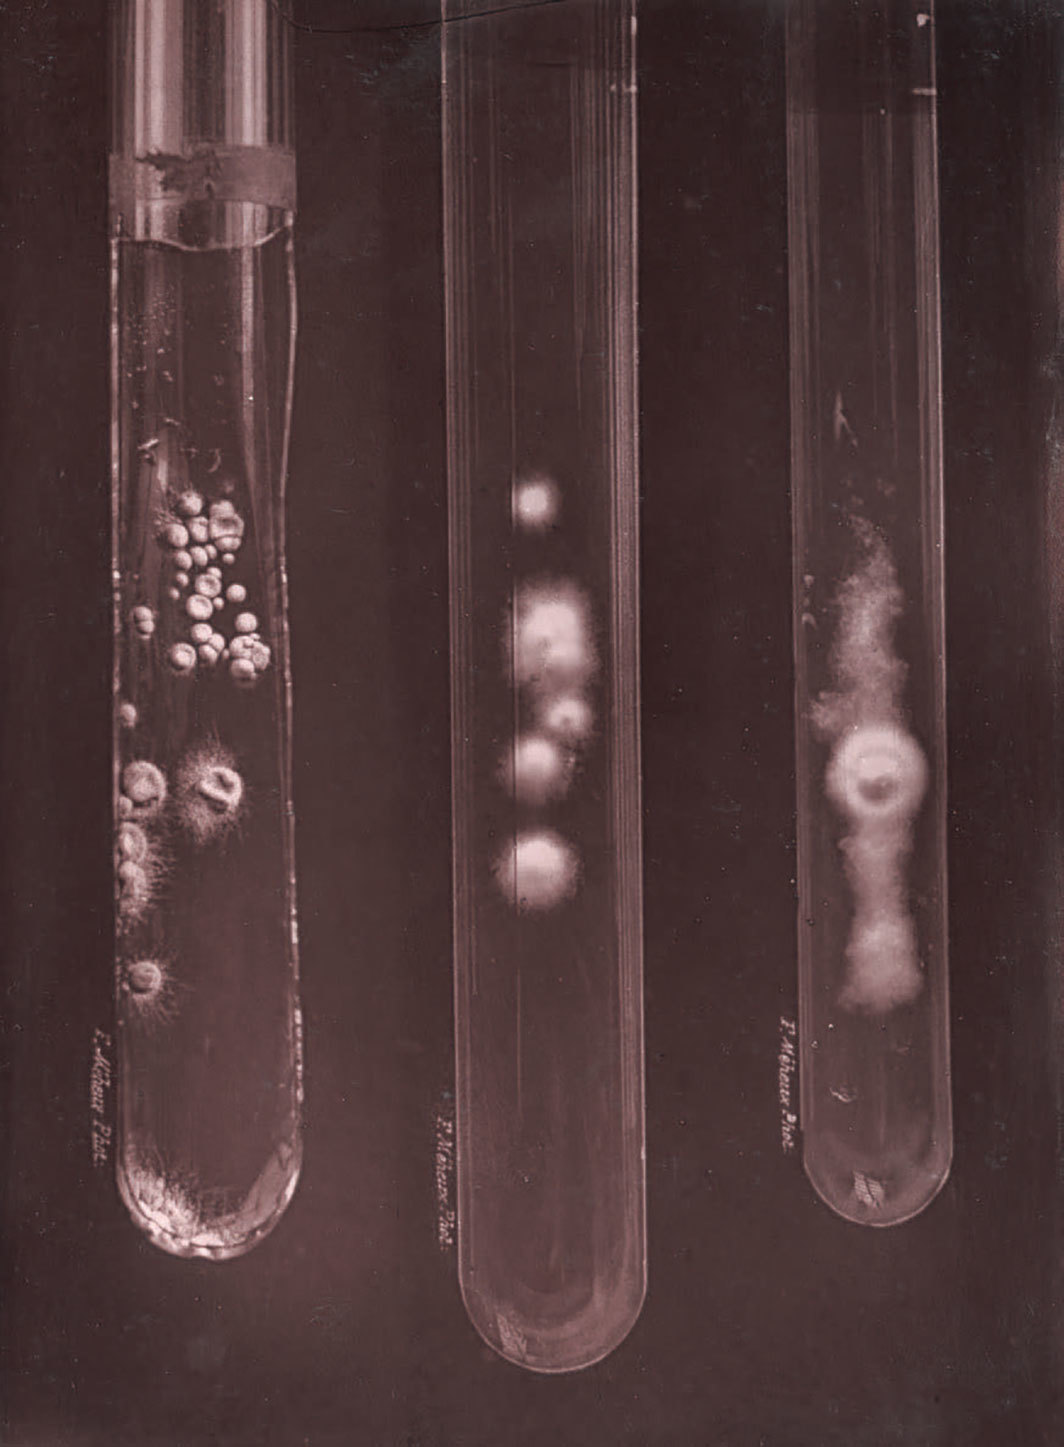 Culture specimens, Pasteur Institute, Paris, 1887. Photo: adoc-photos/Corbis/Getty Images.